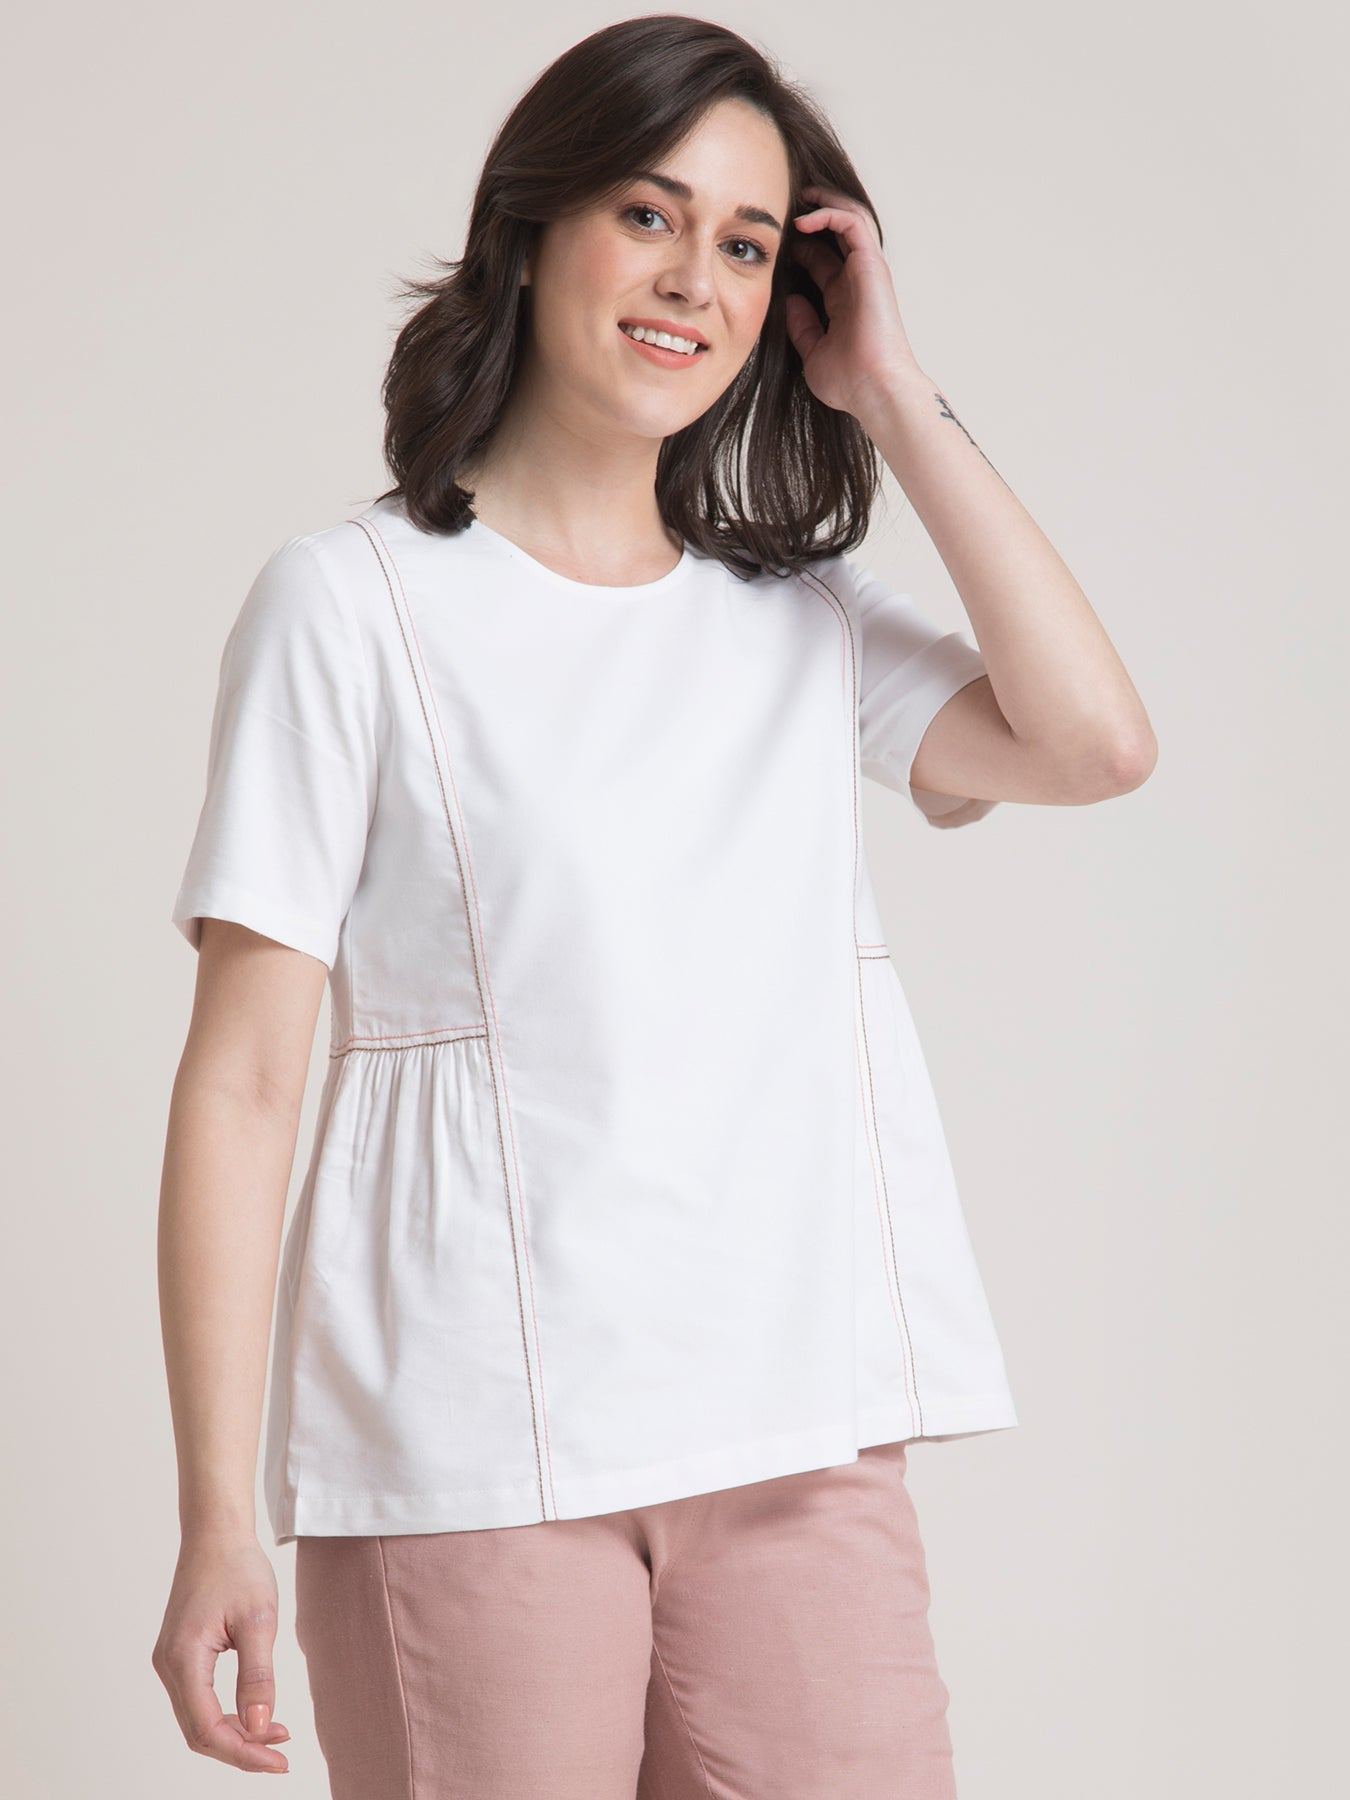 Cotton Round Neck Gather Top - White and Pink